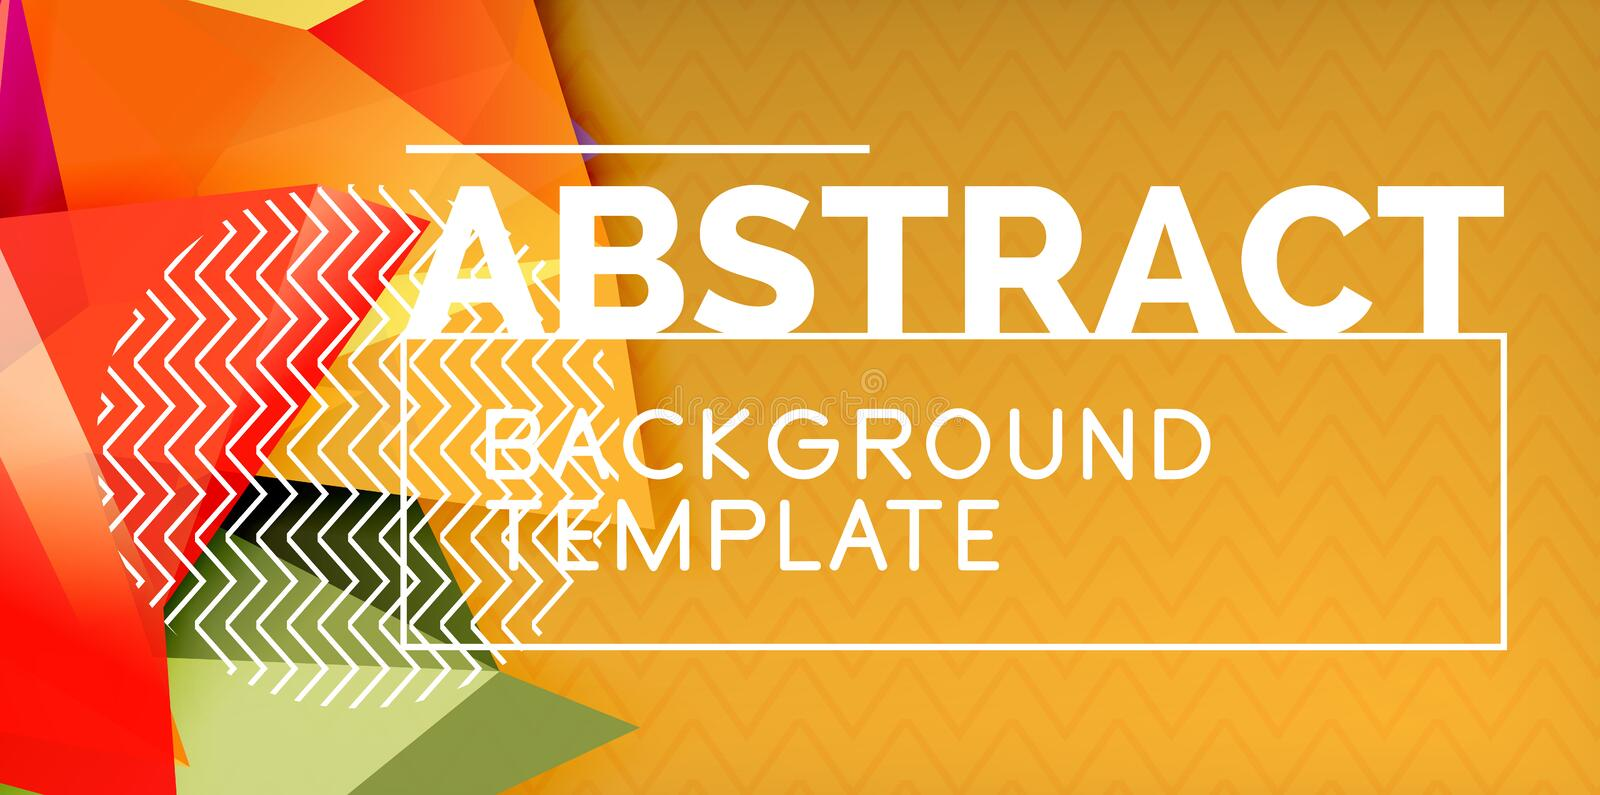 Low poly design 3d triangular shape background, mosaic abstract design template royalty free illustration